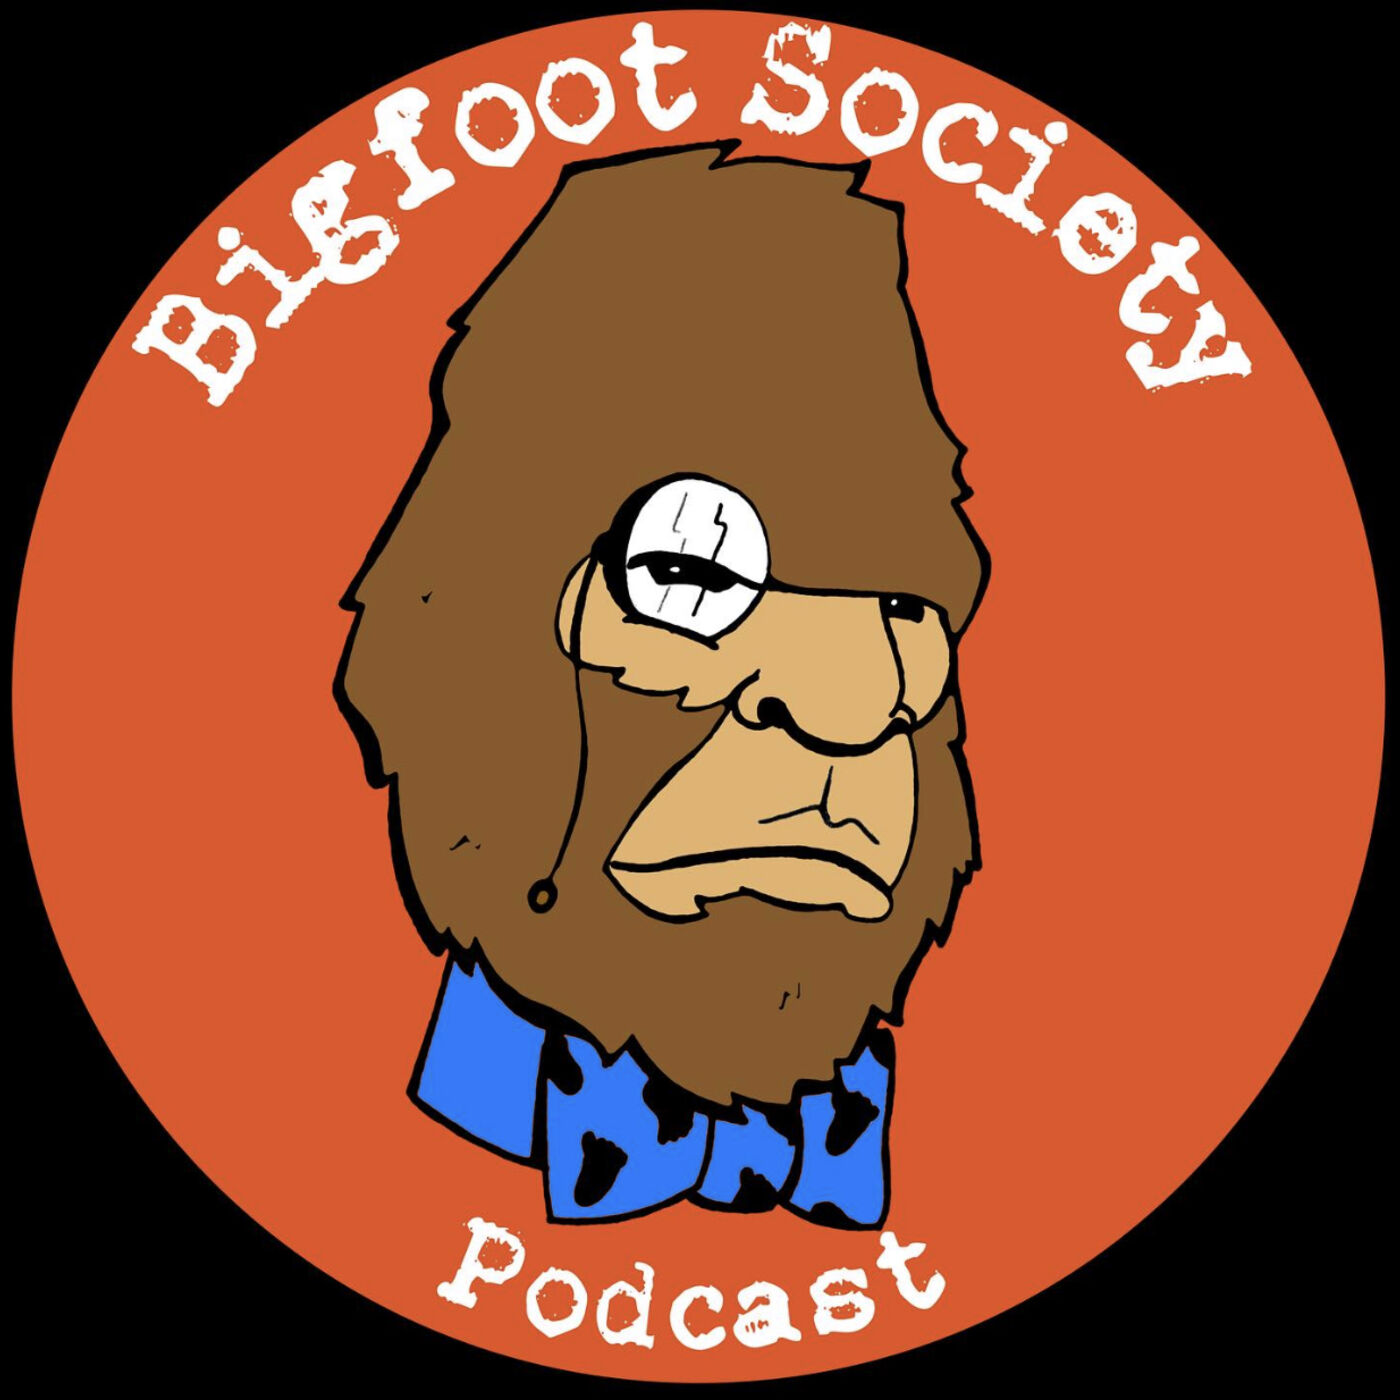 Bigfoot Society Clubhouse: Our Favorite Regional Bigfoot